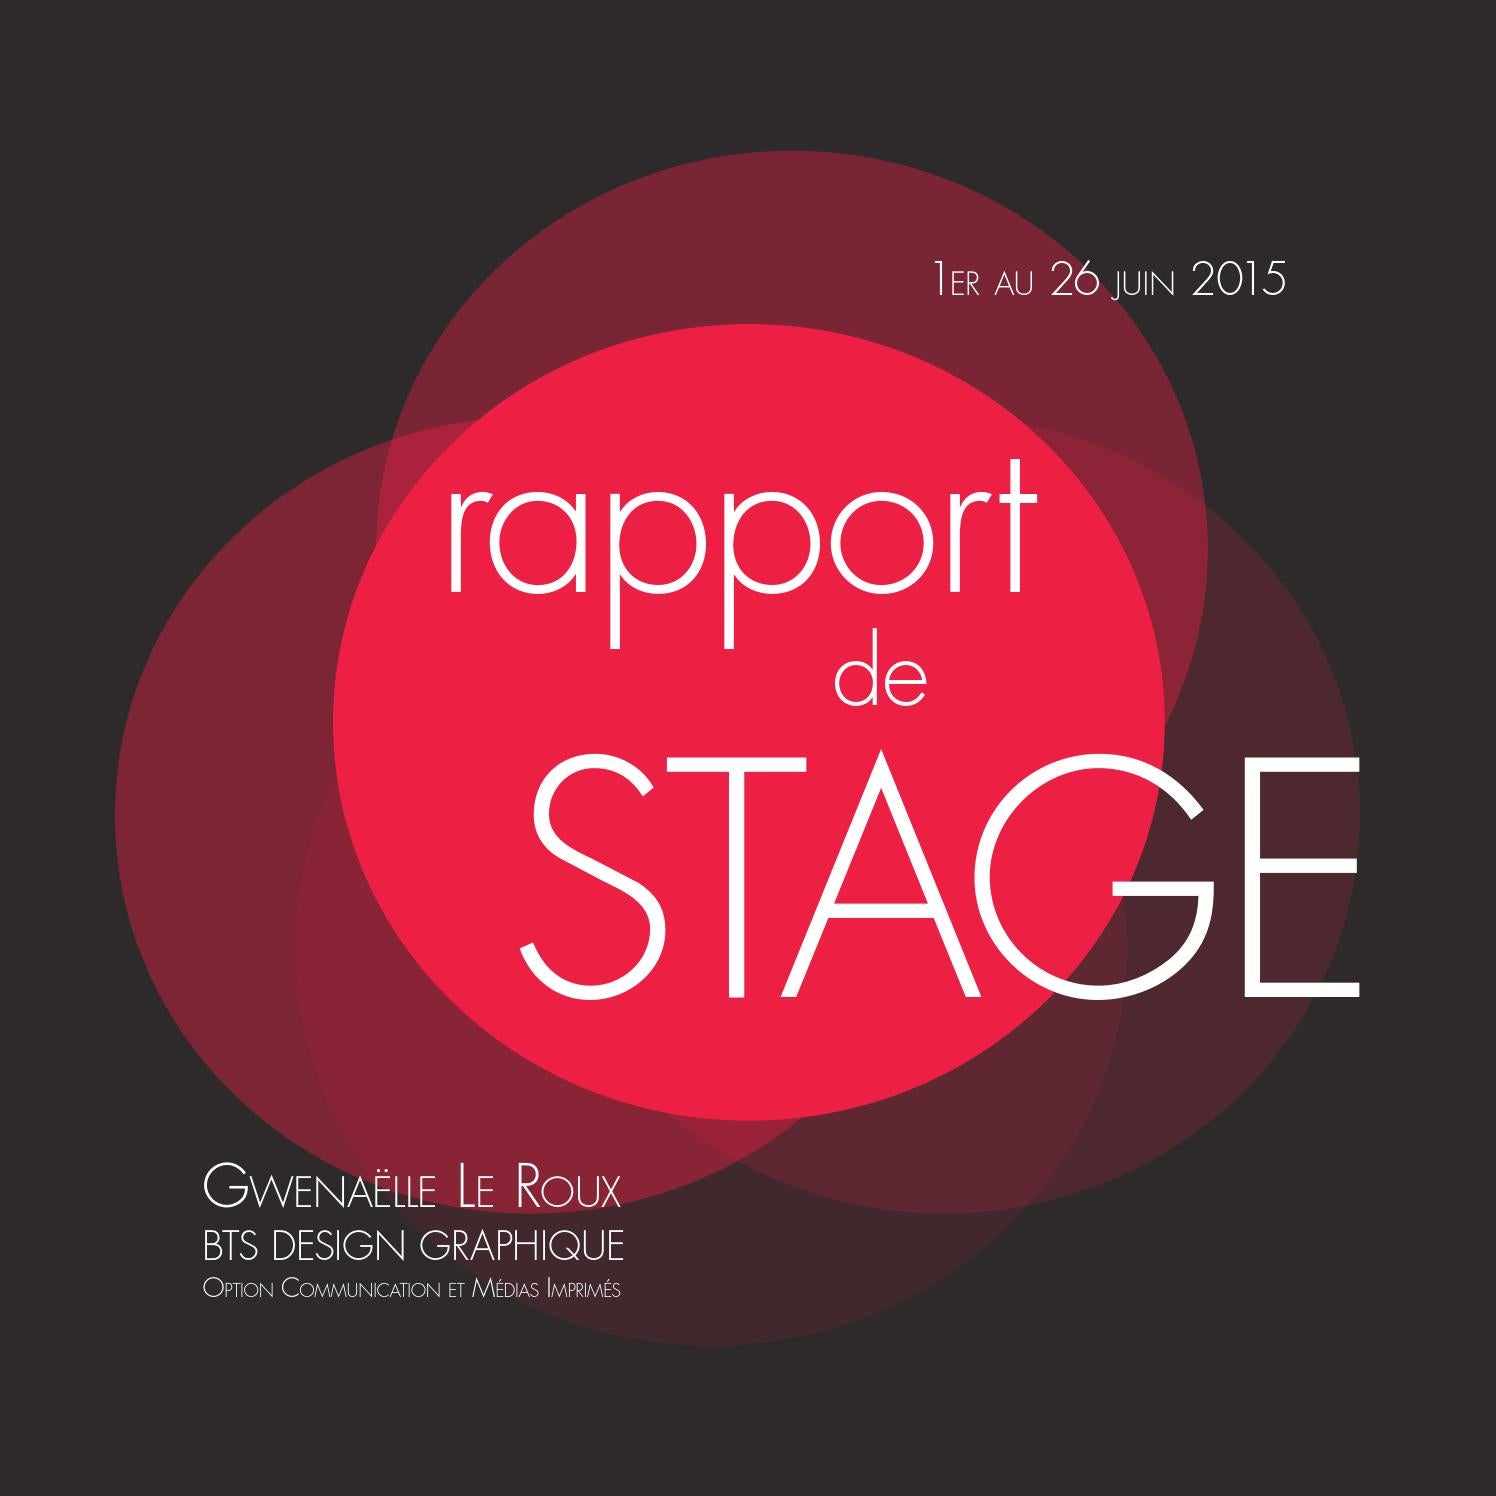 Assez Rapport de stage - Iken Communication by Gwen Stan Pattumiera - issuu TZ91